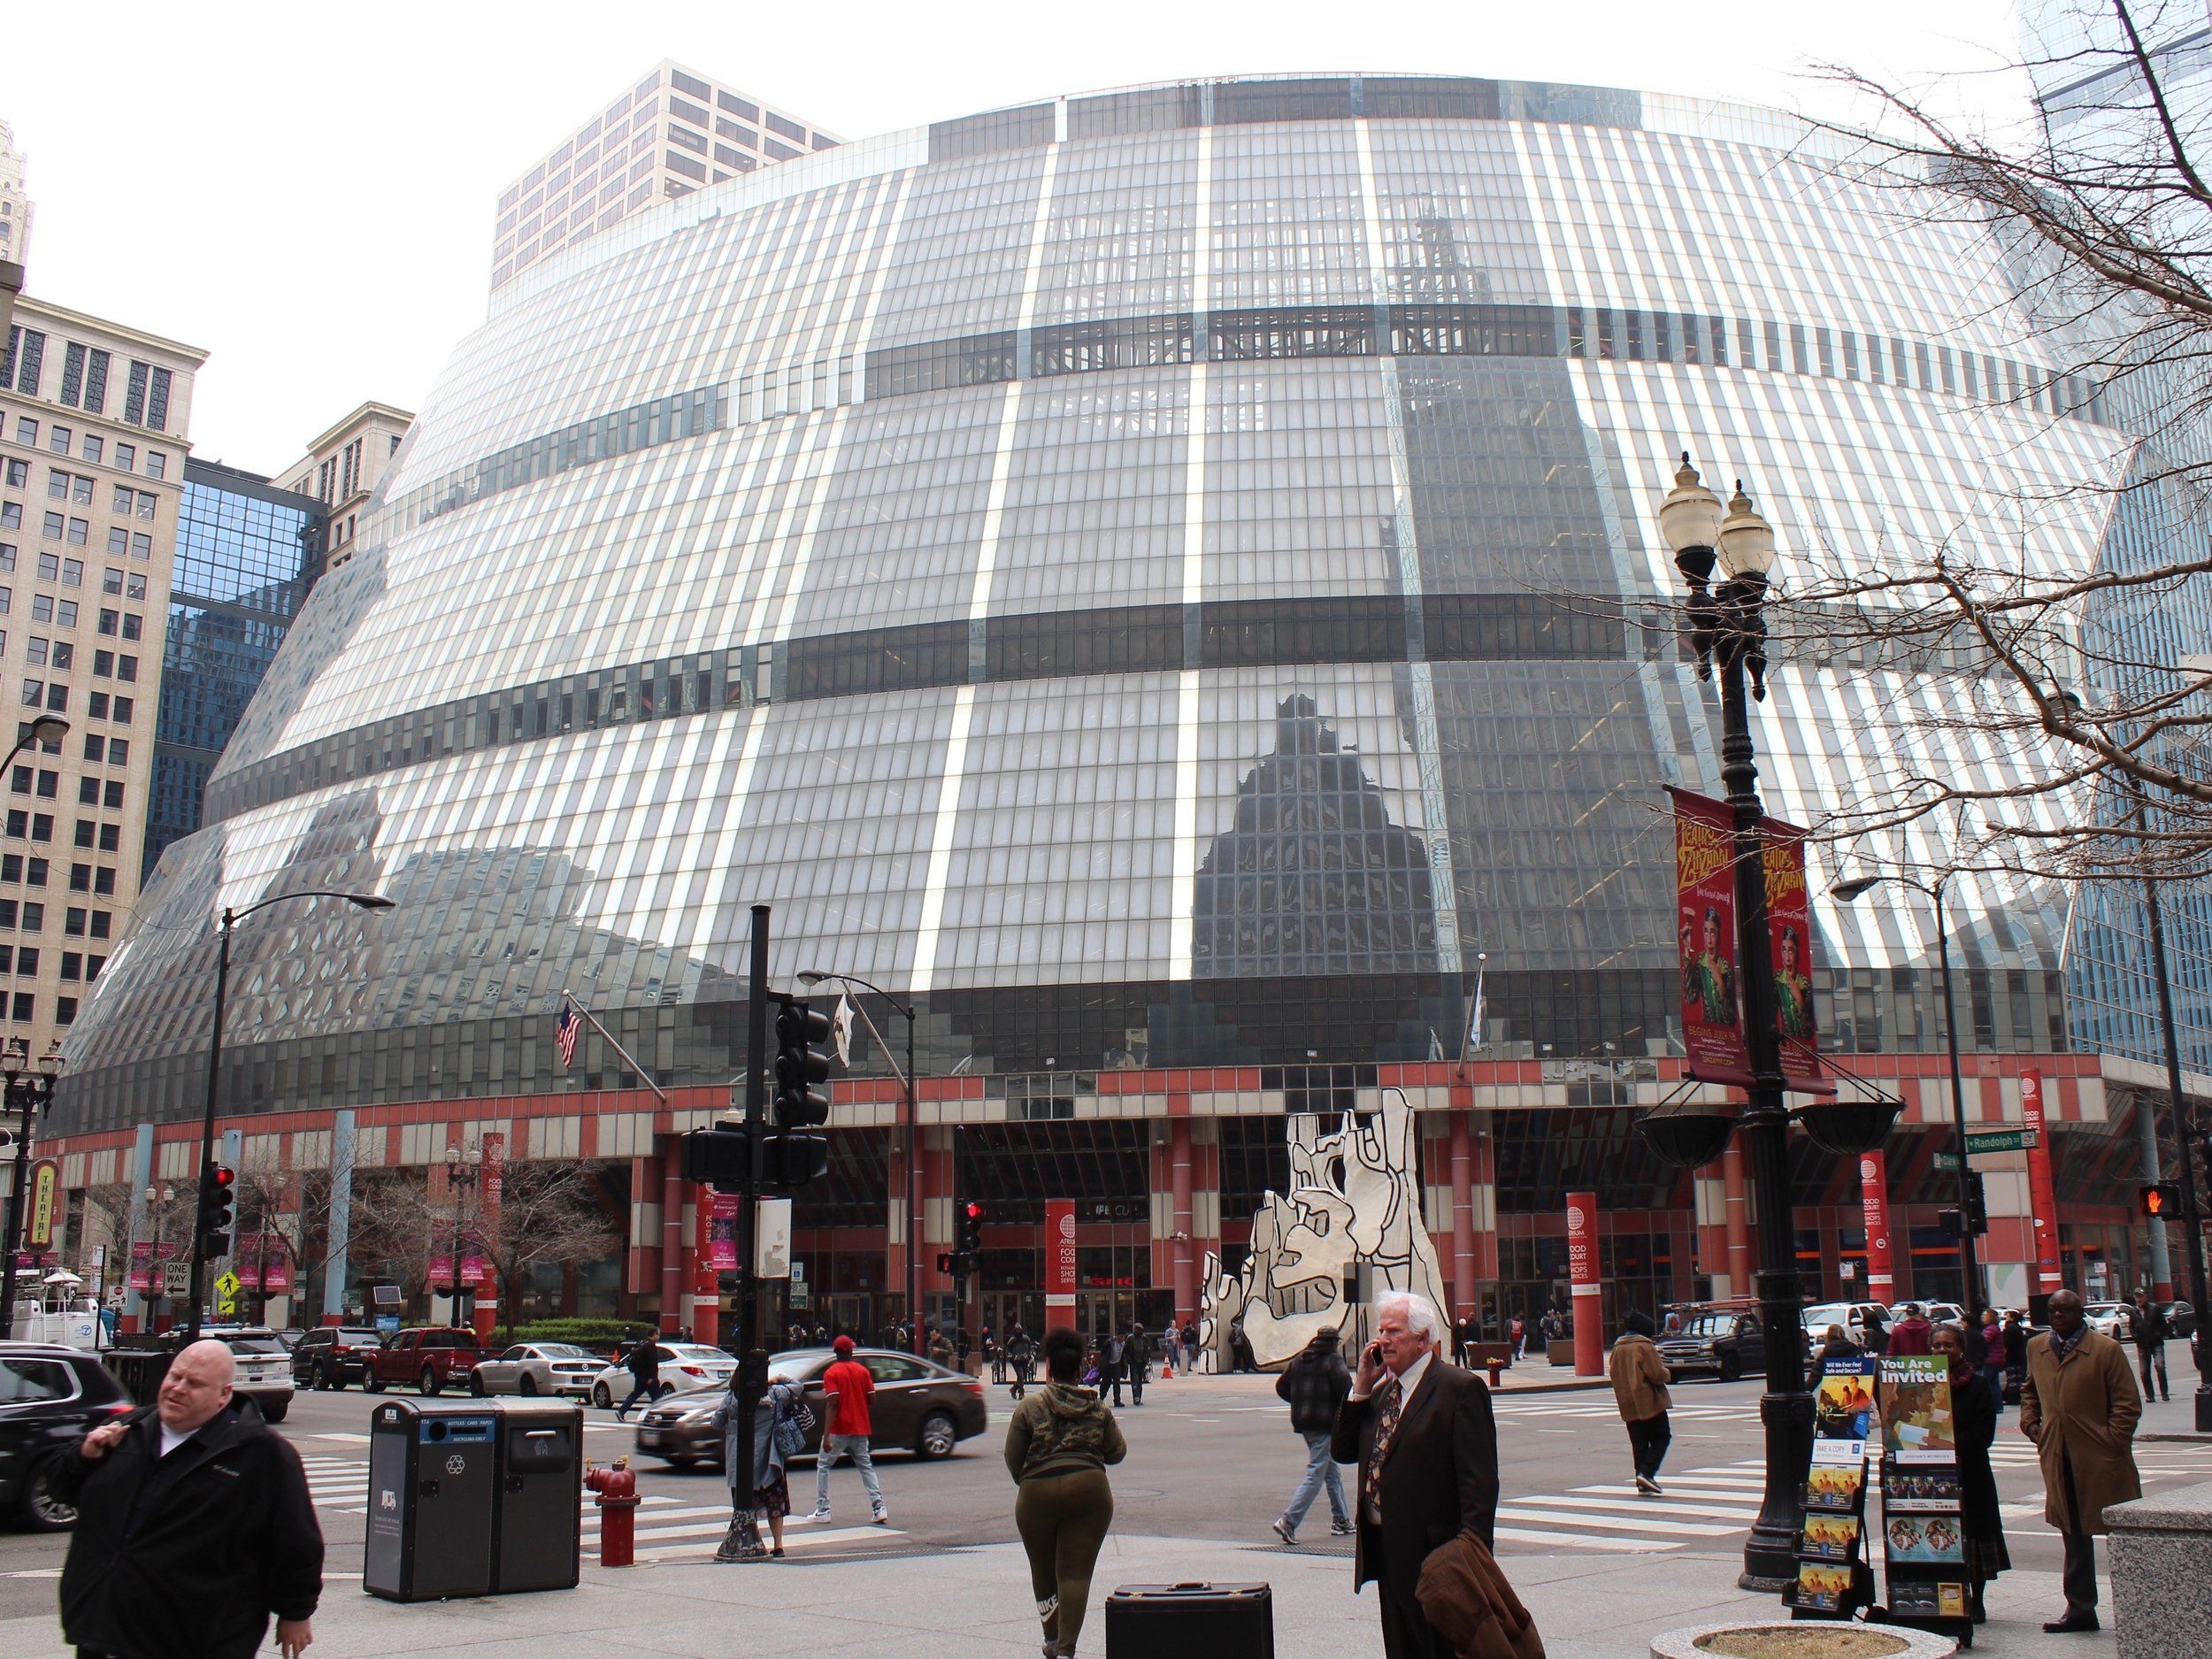 With the state planning to sell the Thompson Center, Landmarks Illinois is pushing for the structure to be retained intact by returning it to a prominent place on the group's annual list of Most Endangered Historic Places. (One Illinois/Ted Cox)